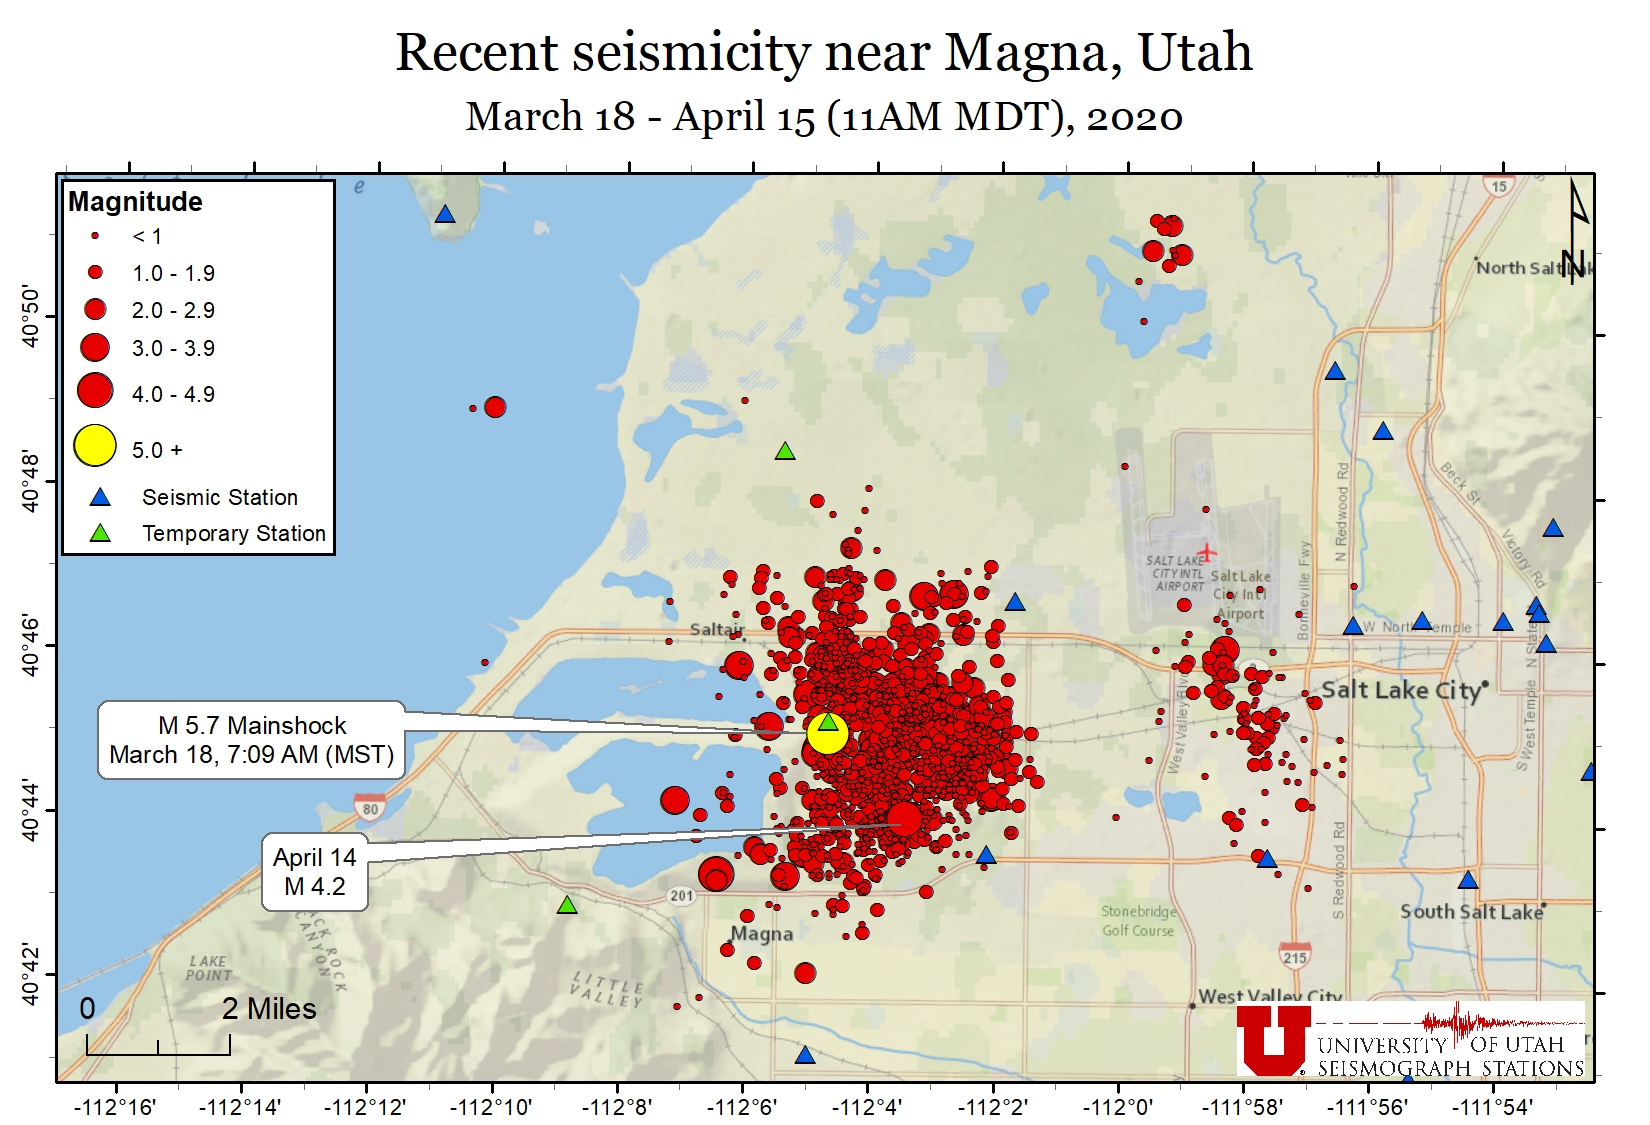 Map of recent seismic activity near Magna, Utah